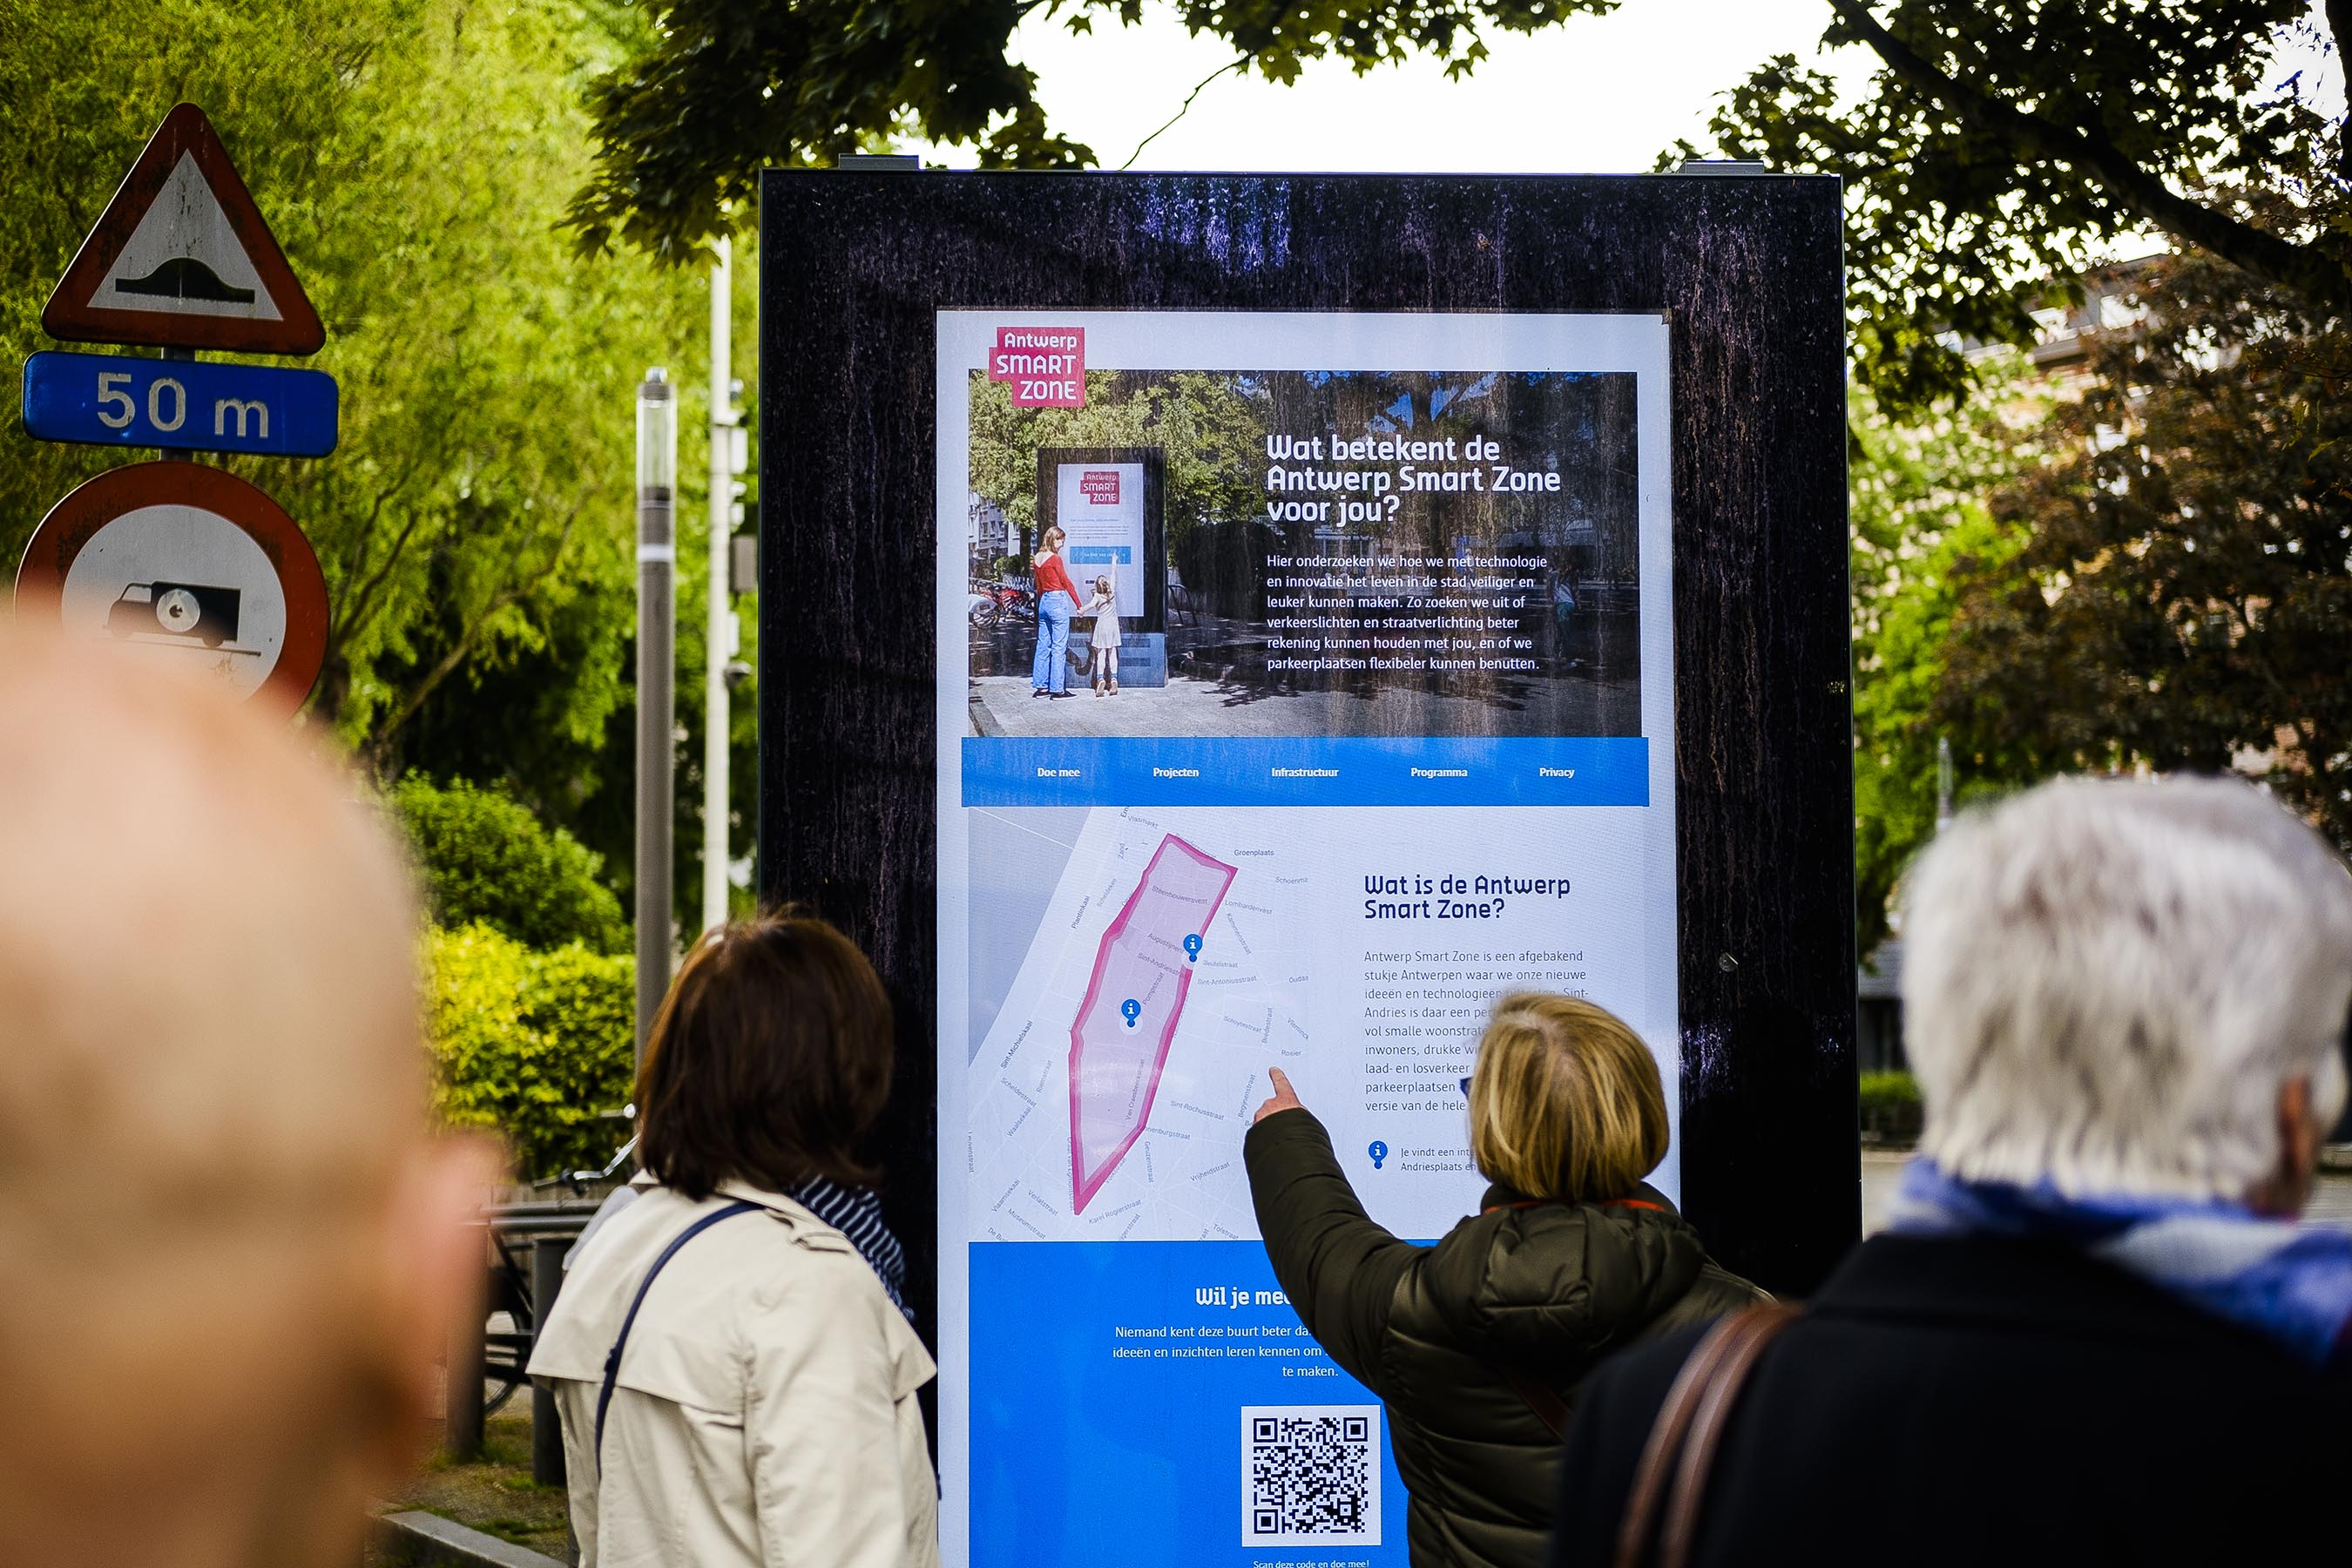 Neighbourhood residents are collaborating to design public screens that provide information about the area, particularly for those without a mobile phone or the internet.  Credits: Victoriano Moreno